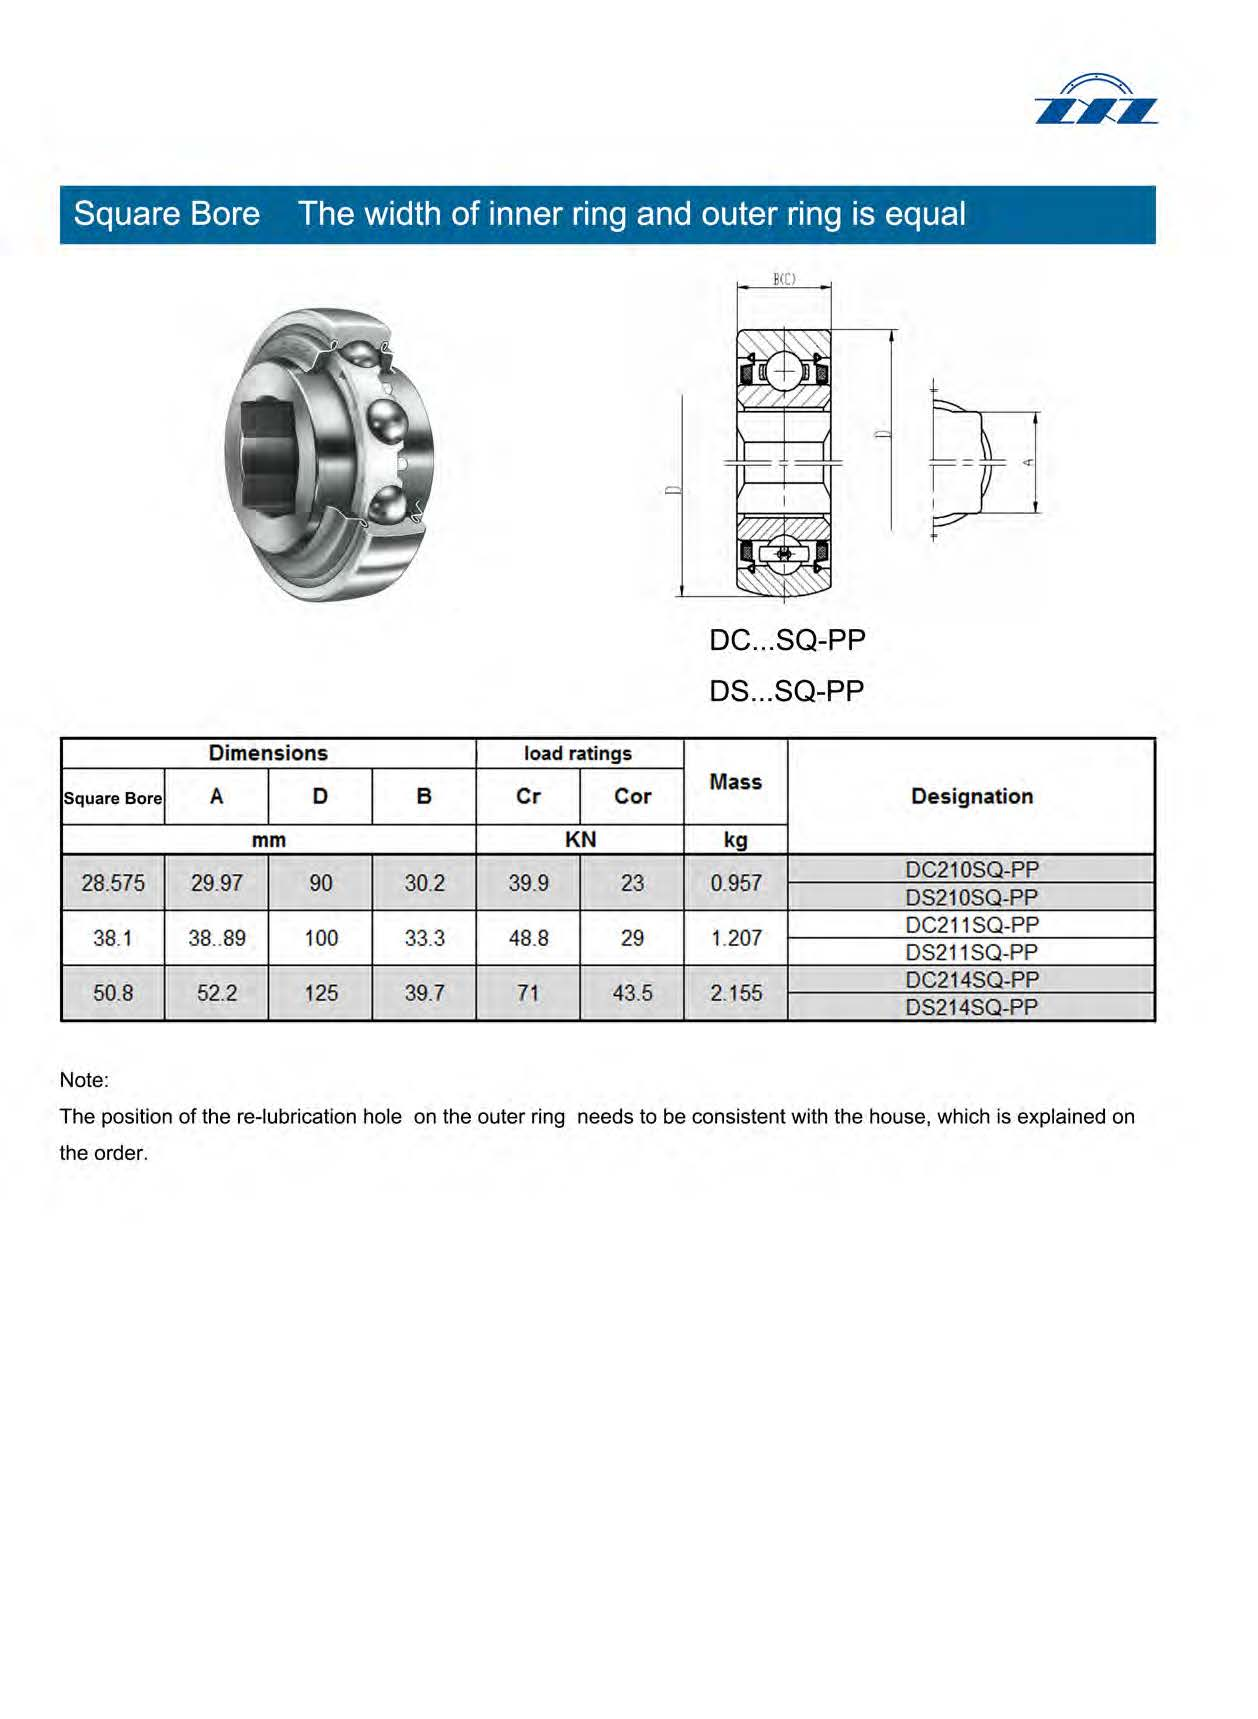 square bore bearings(inner ring and out ring is equal)